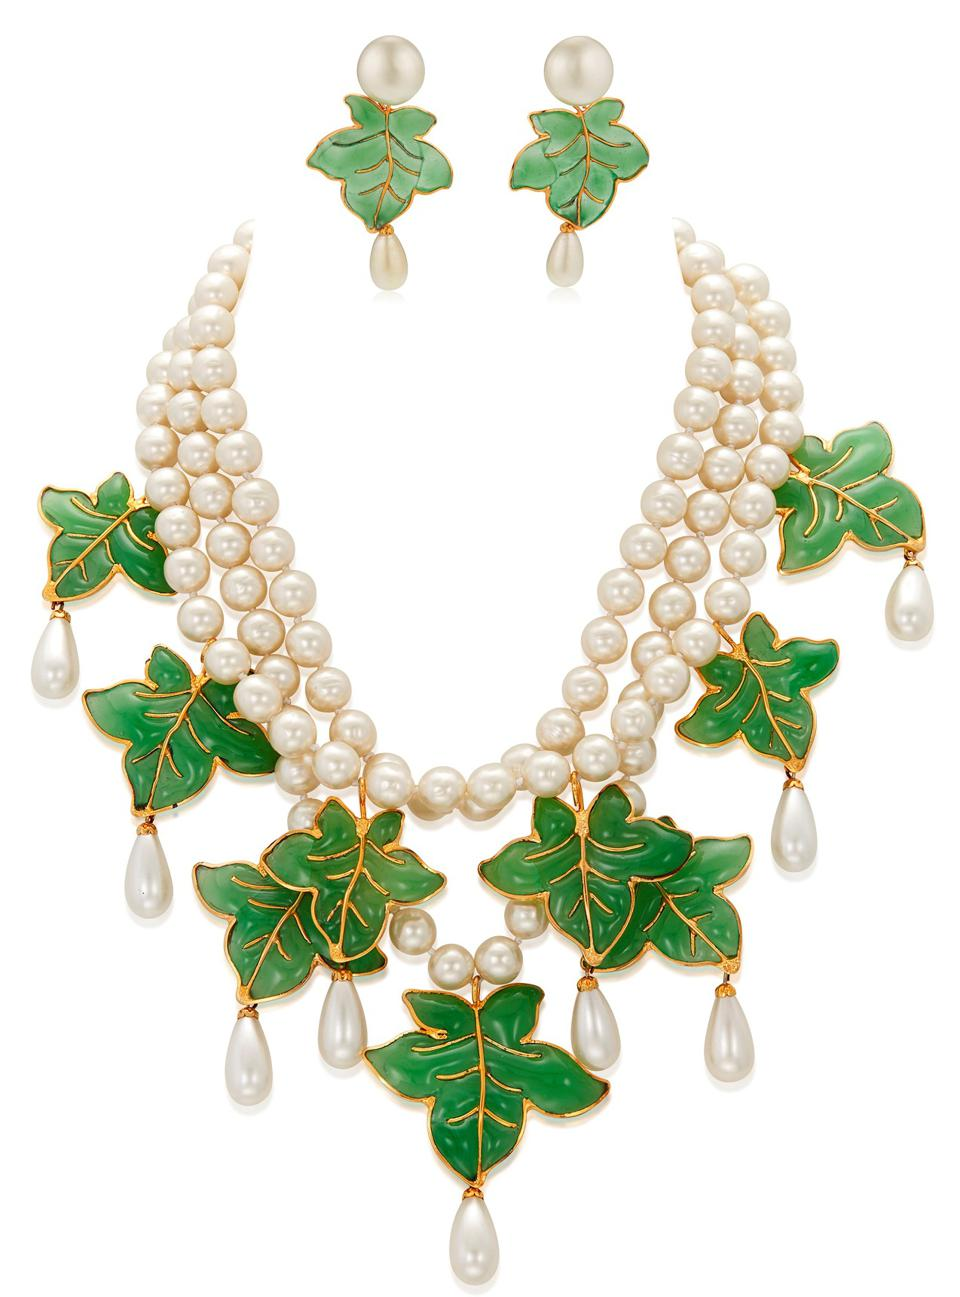 Important Chanel set of Gripoix glass and faux pearl jewelry, $4,000-6,000